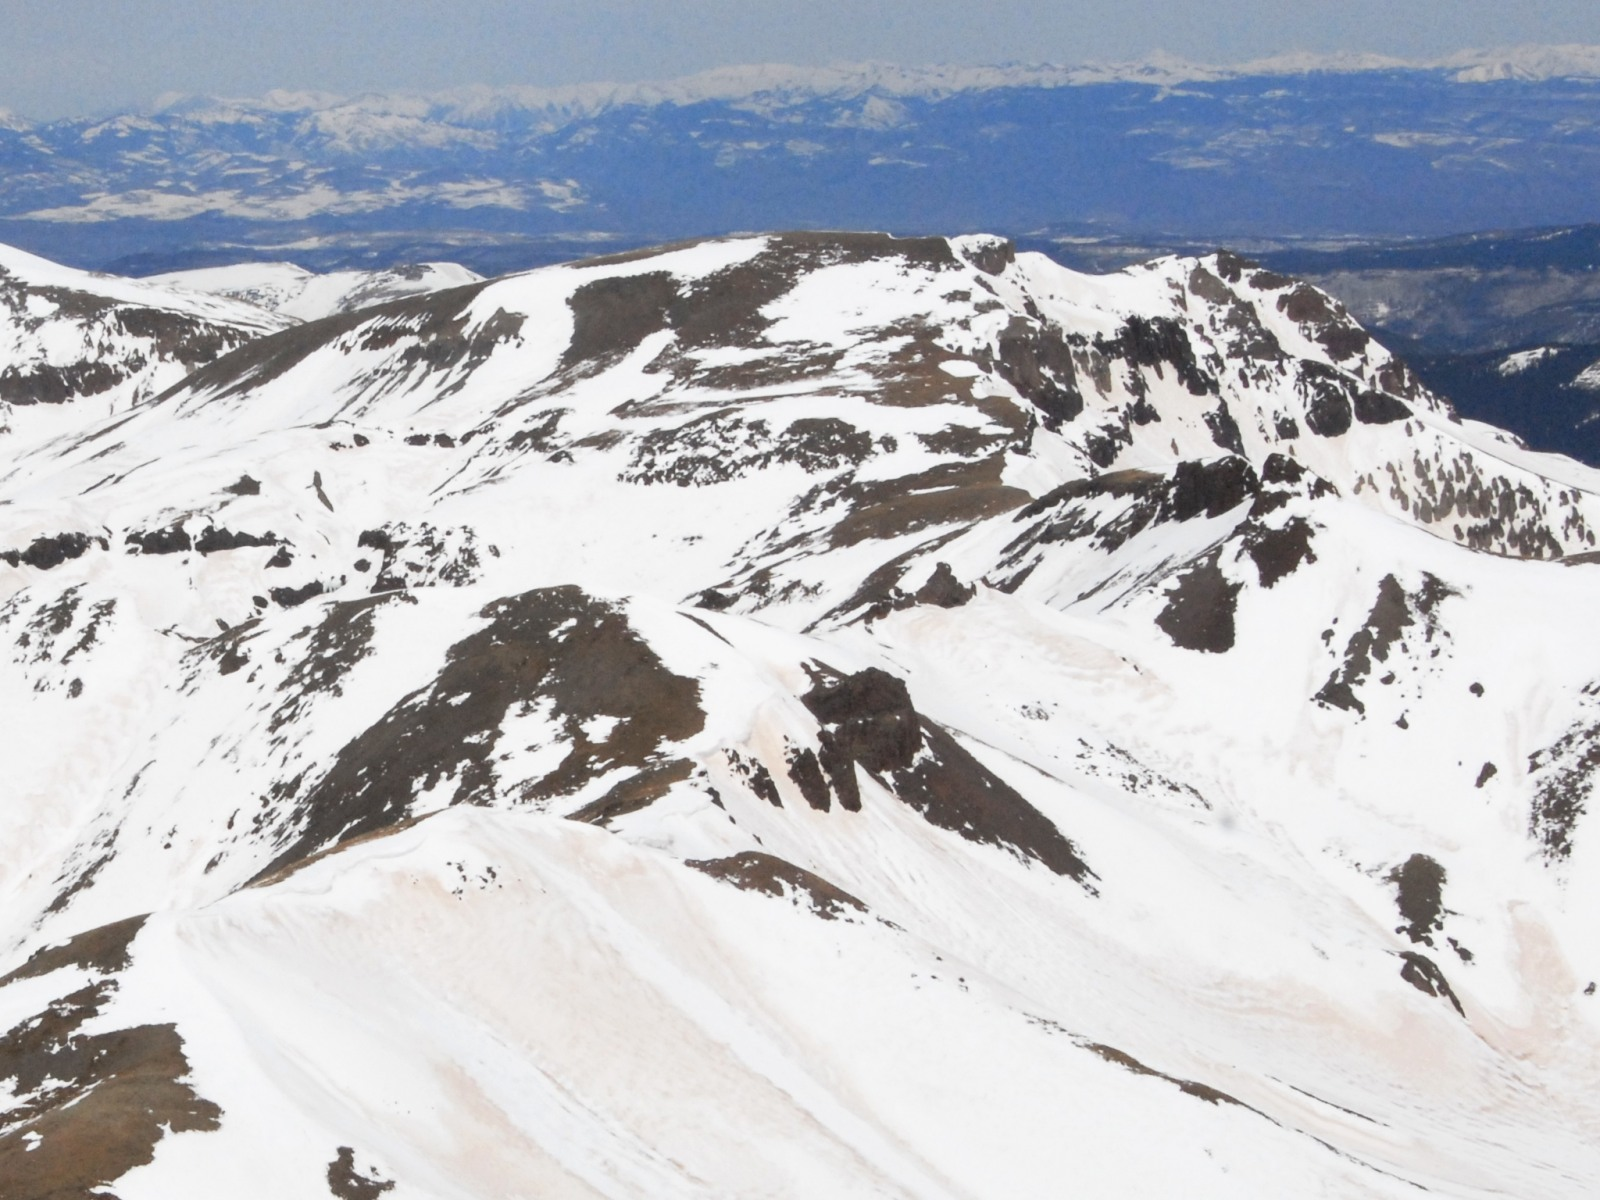 Silver Mountain from the summit of Uncompahgre Peak